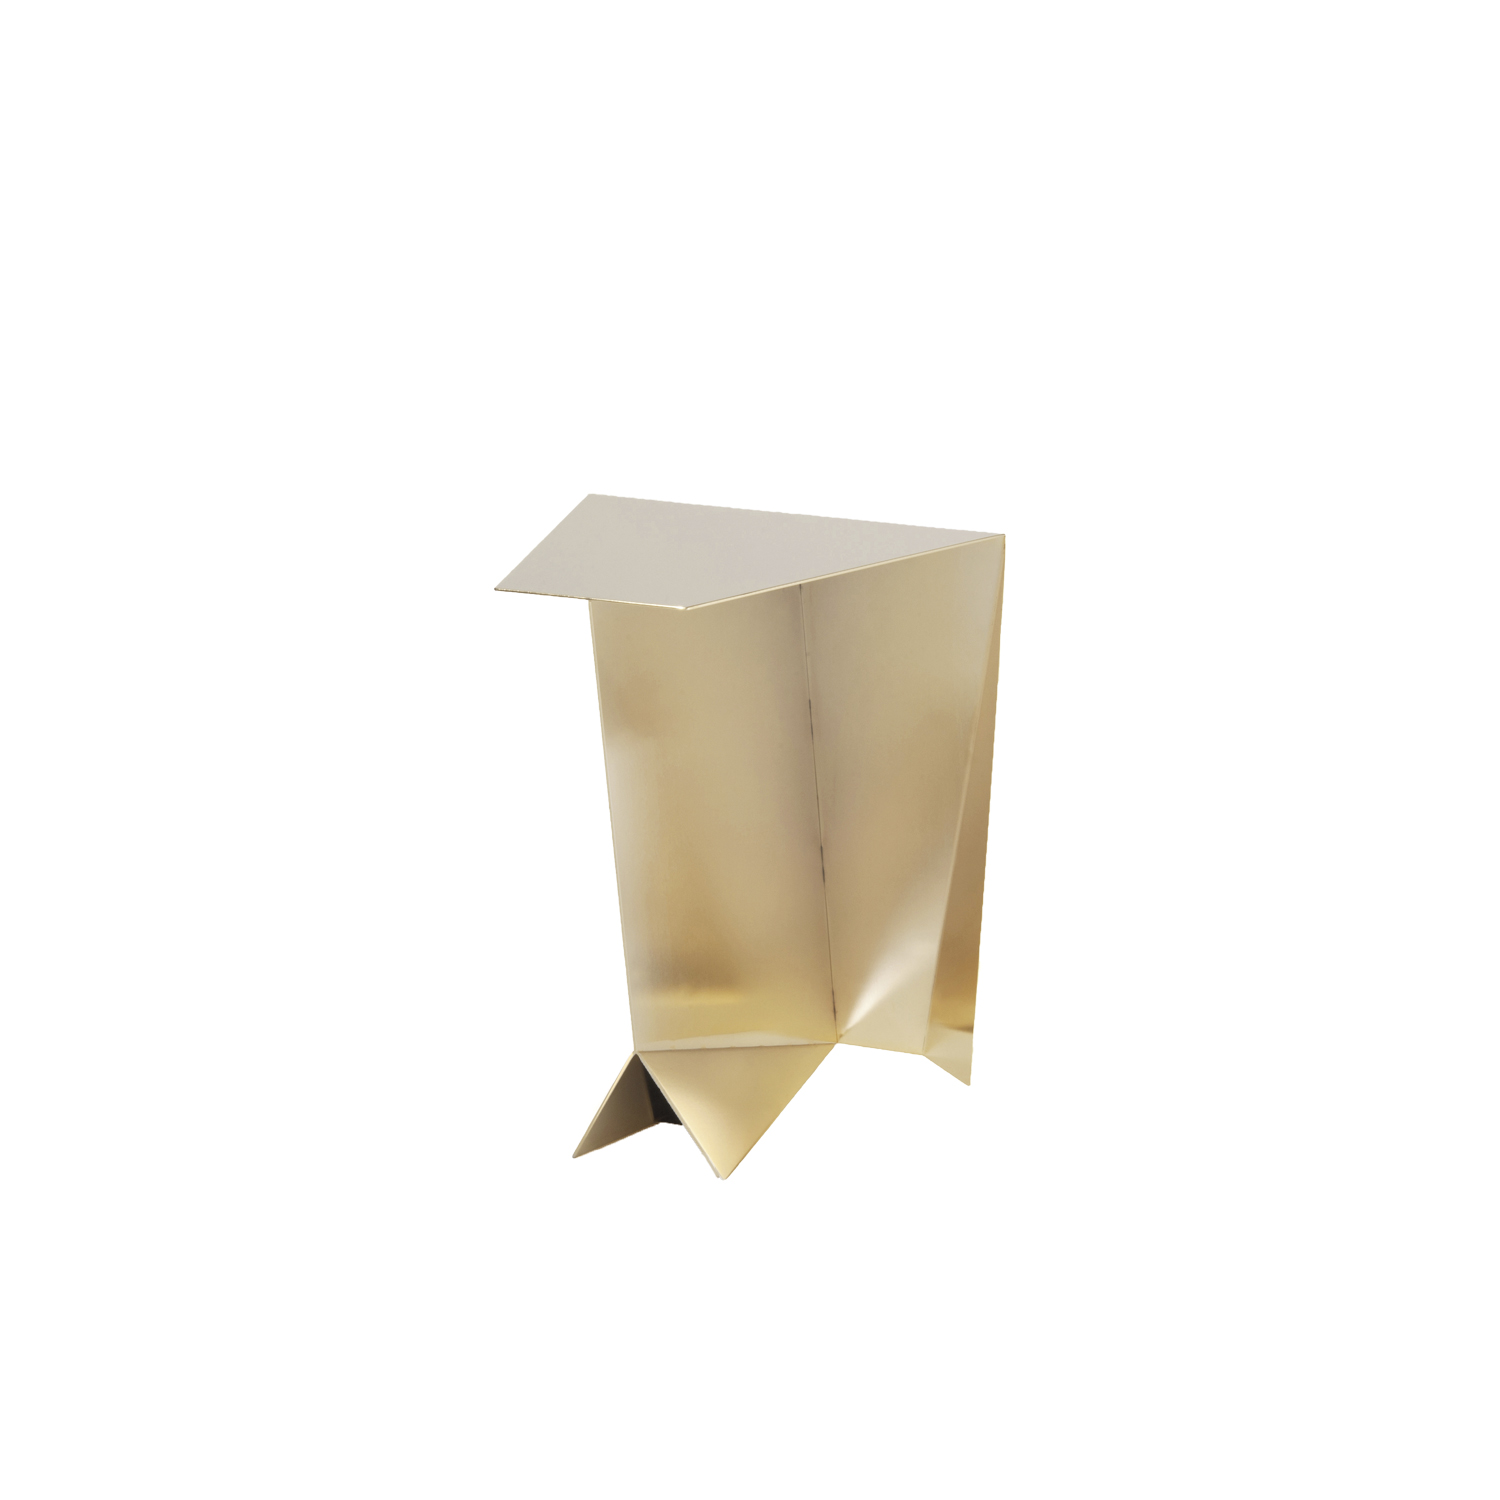 Perseus Side Table - Gold Limited Edition - The Perseus side table is shaped by 3 mm thick steel plates to increase strength and stability. It's the ideal complement for the set up of the living area, thanks to the precious finish by hand in satin-finish gold. The Gold edition is limited to 33 pieces, signed and silkscreened.  | Matter of Stuff